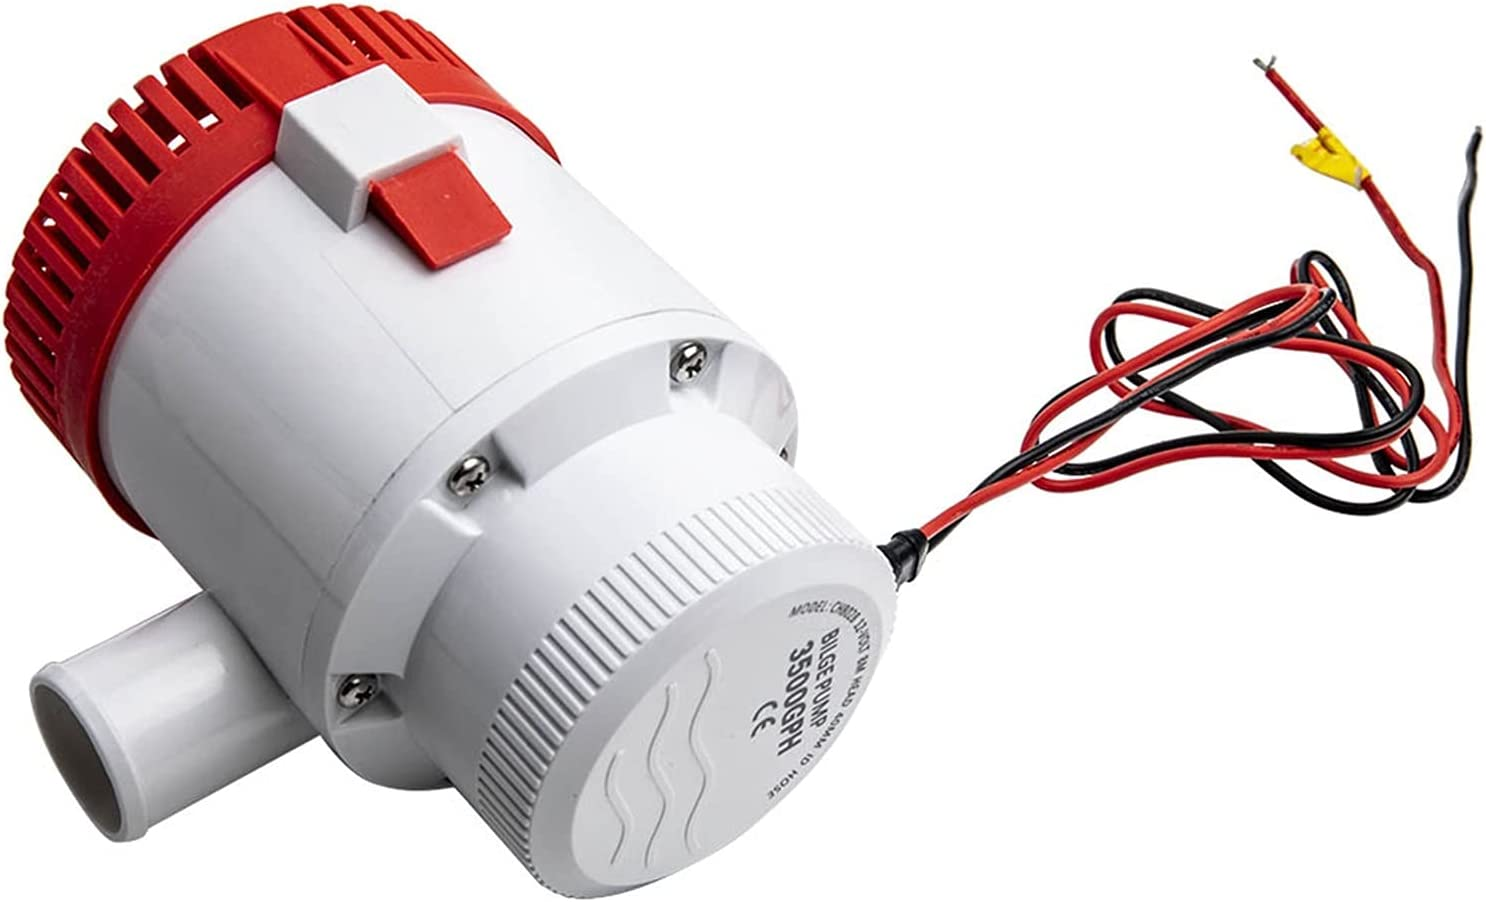 Yi-Achieve 12V Milwaukee Mall 3500 GPH Boat Submersible Electric Bilge Mar Manufacturer OFFicial shop Pump